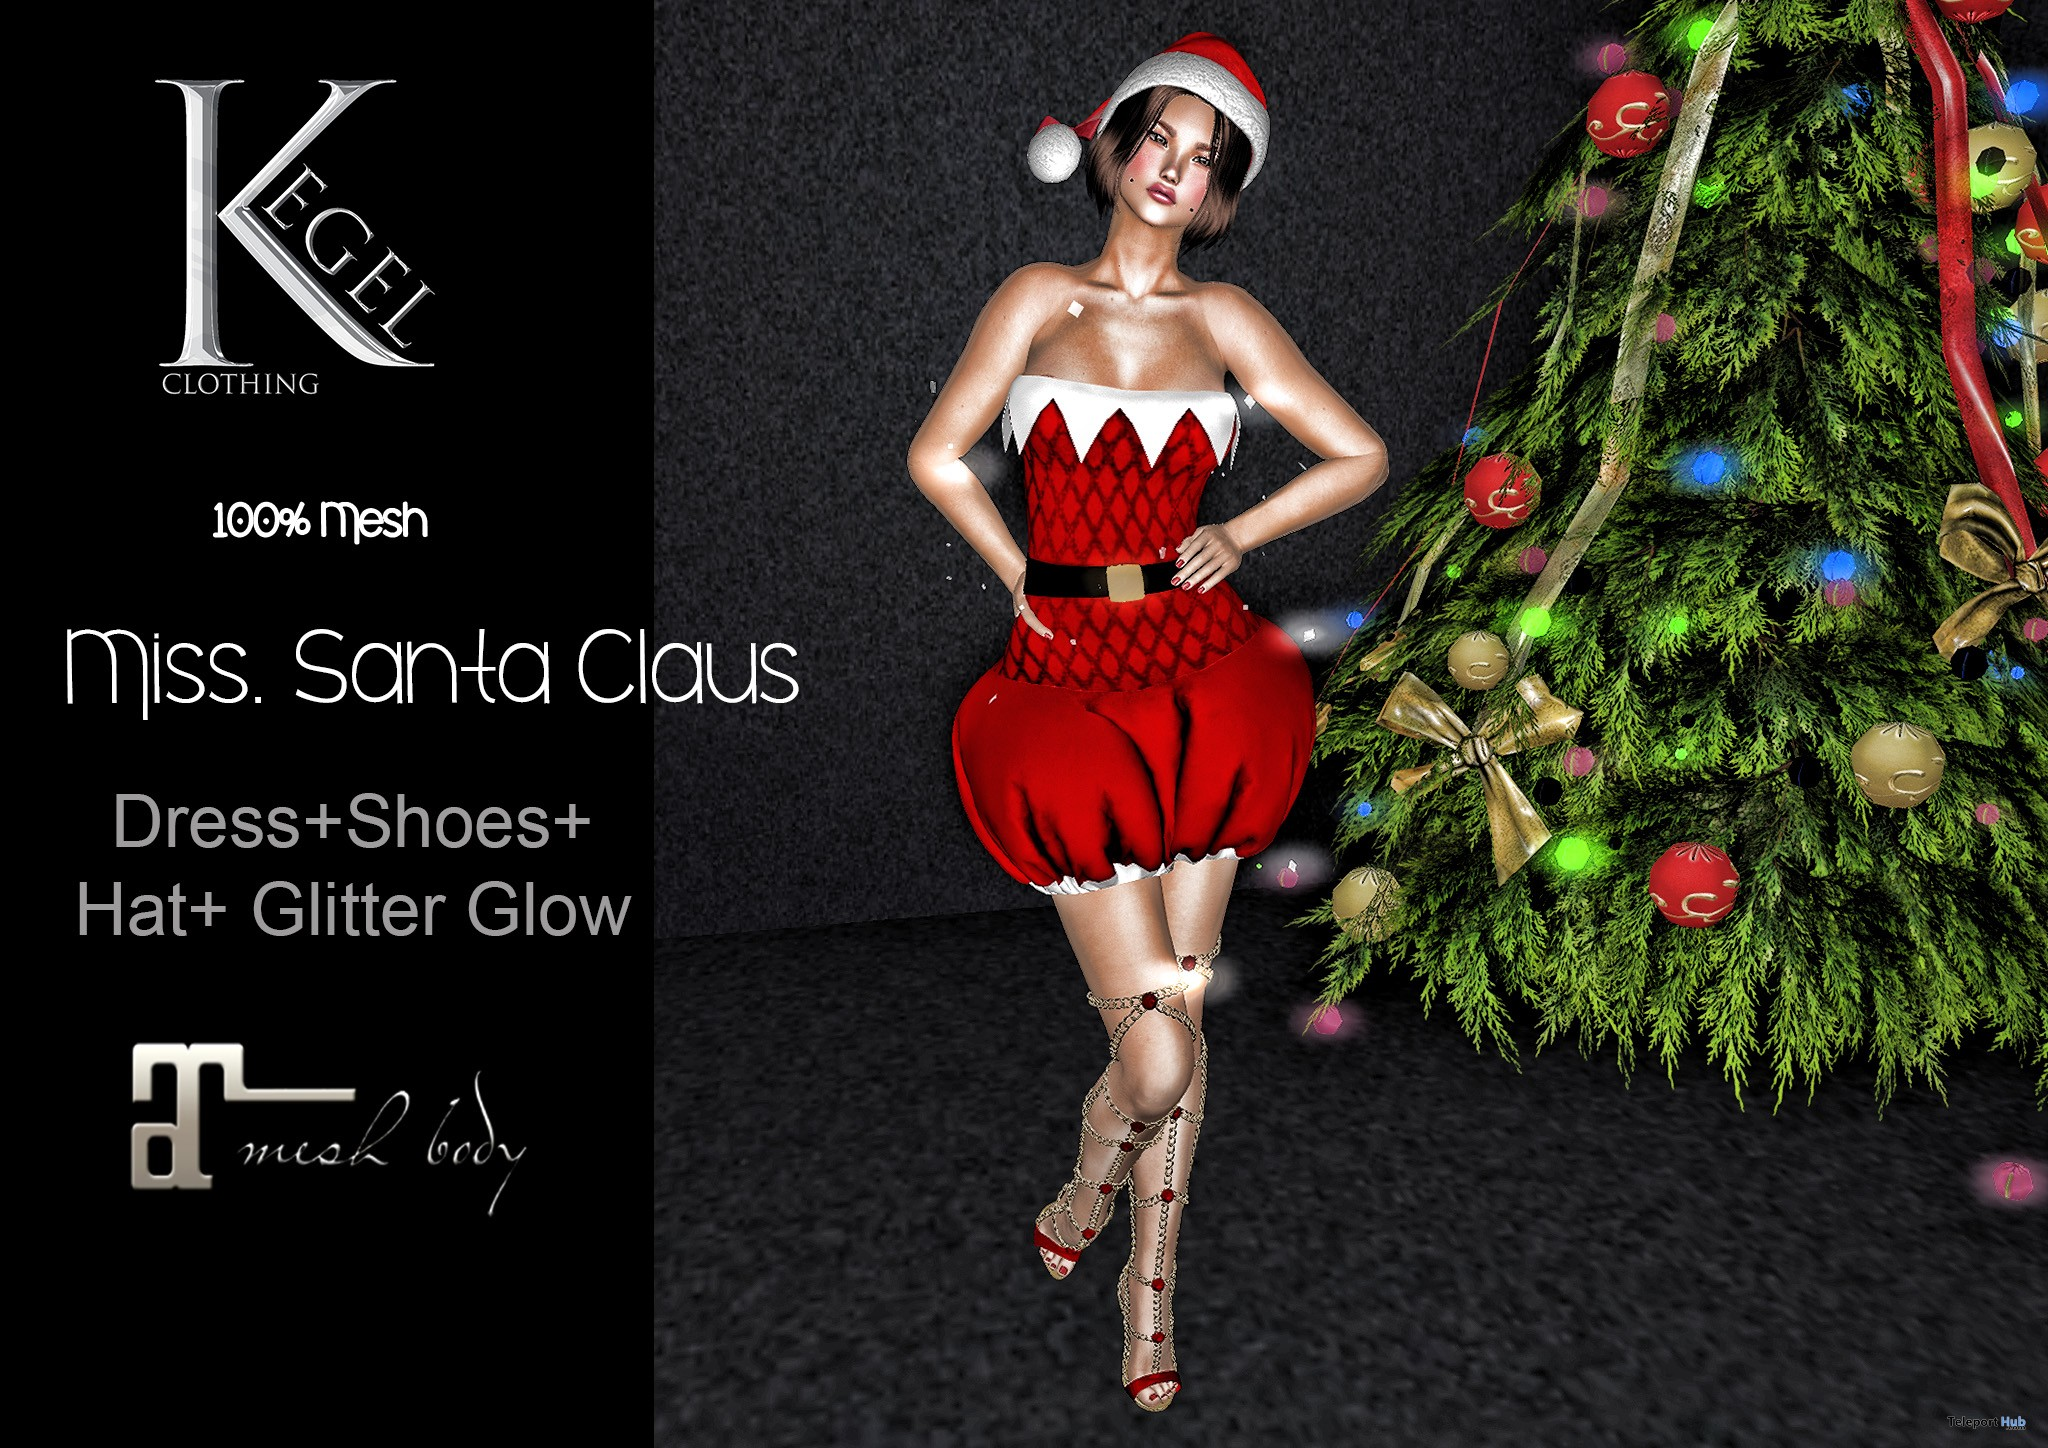 Miss Santa Claus December 2018 Group Gift by Kegel Clothing - Teleport Hub - teleporthub.com